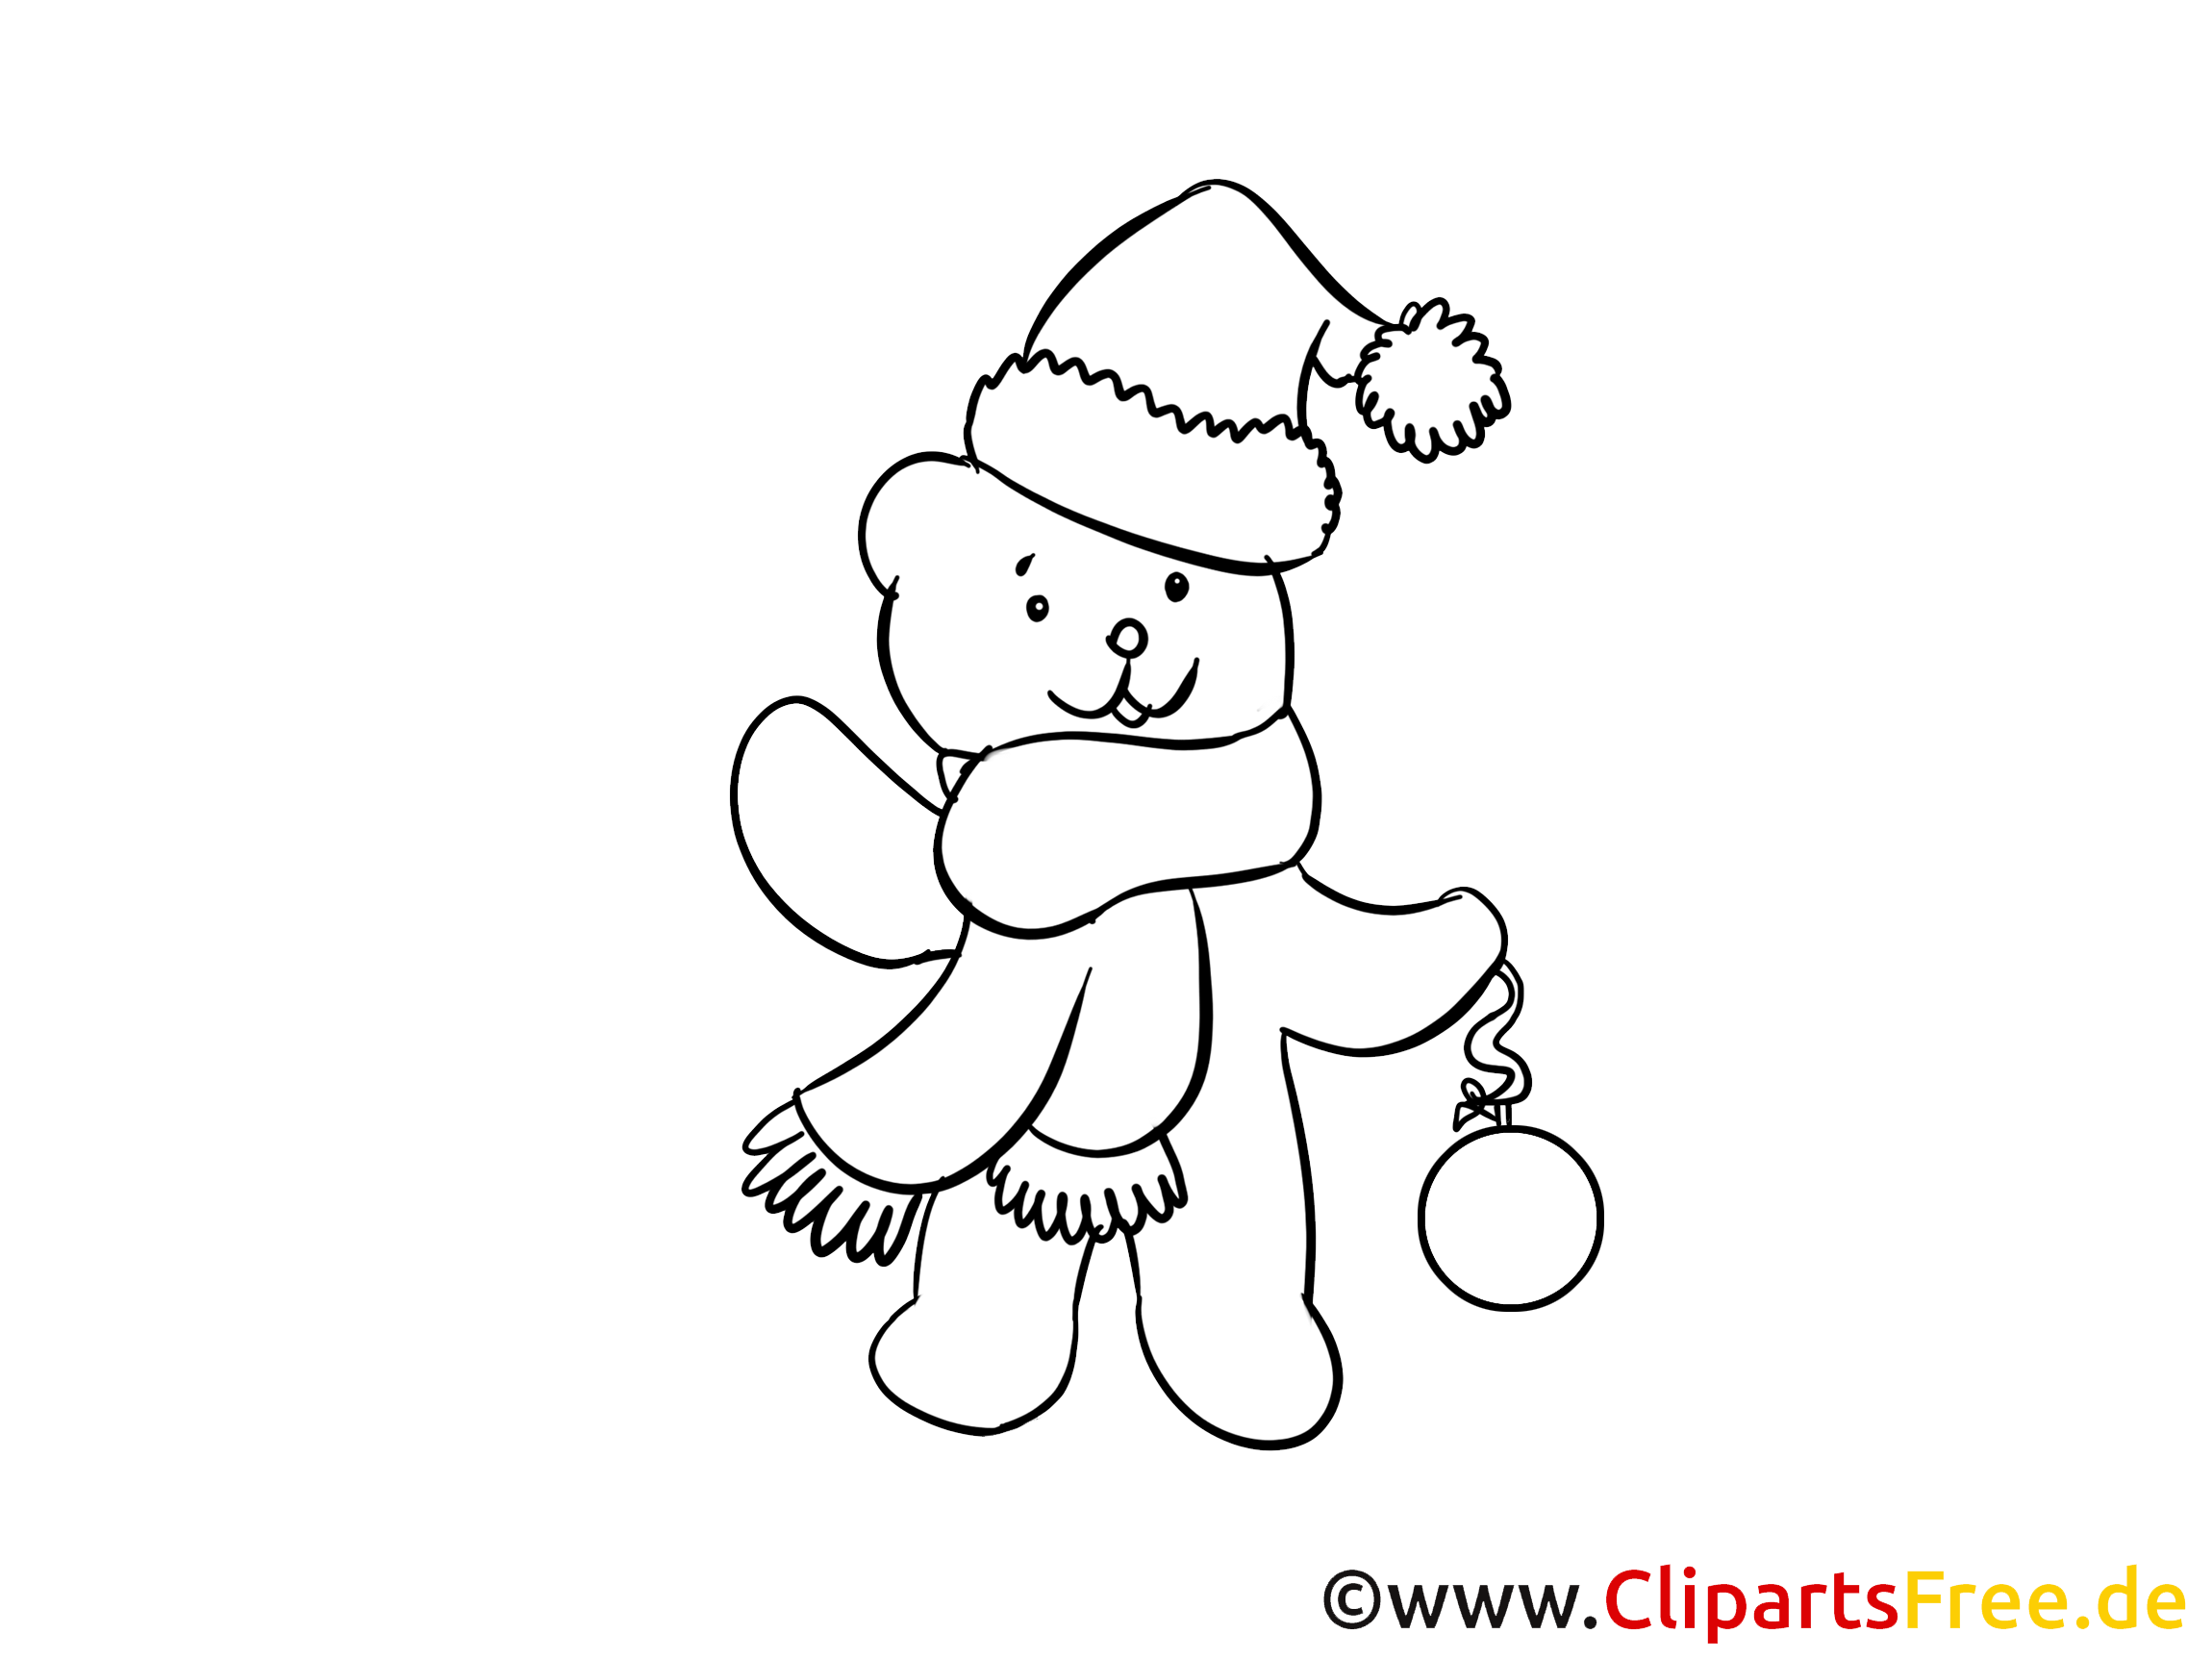 Coloring Sheet Christmas Teddy for free